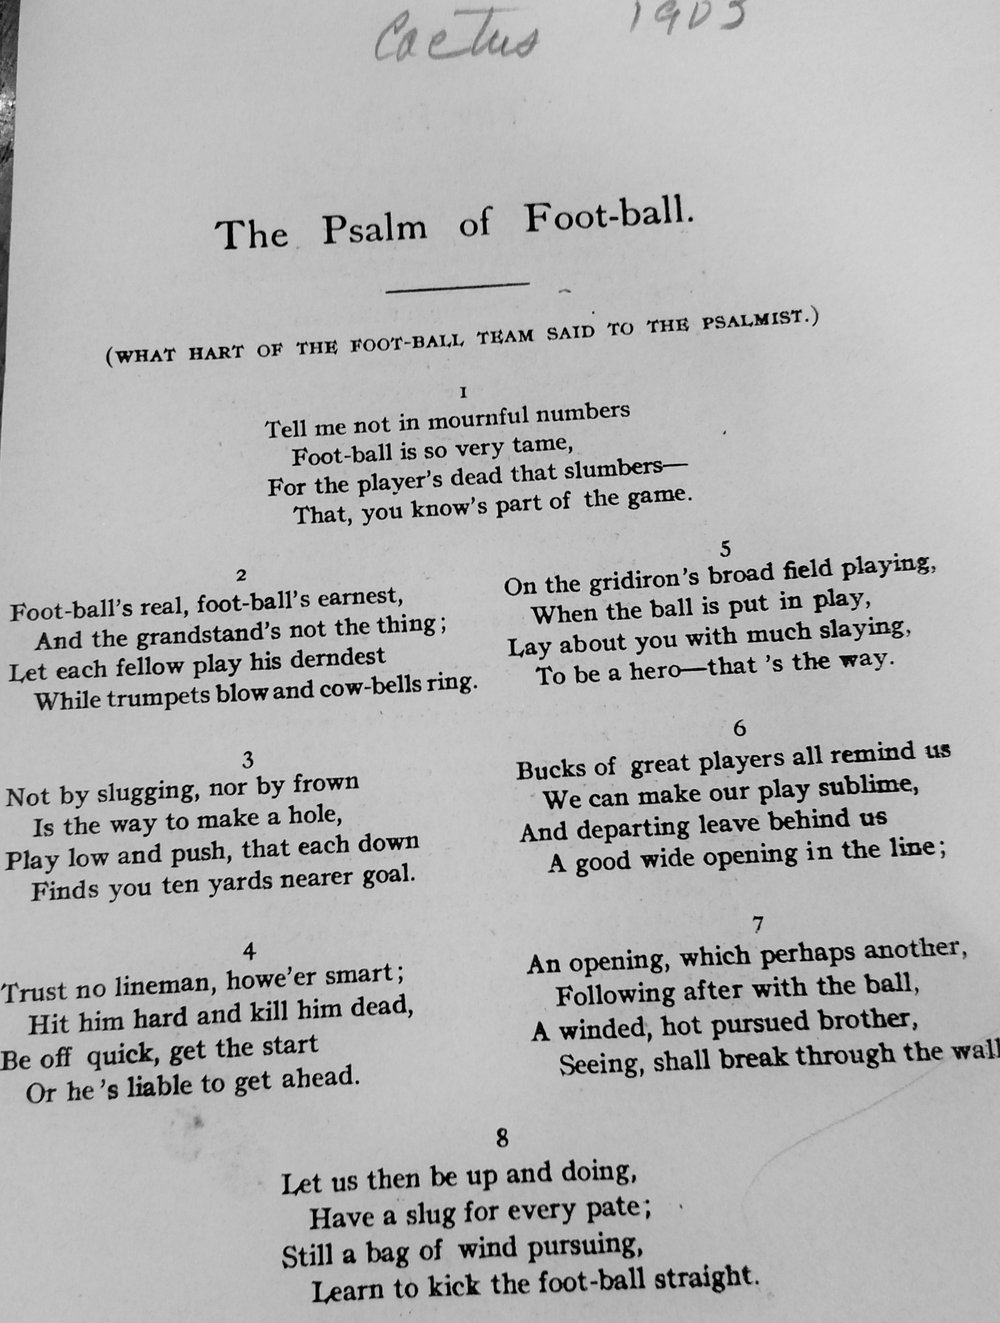 Hart writes the Psalm of Football